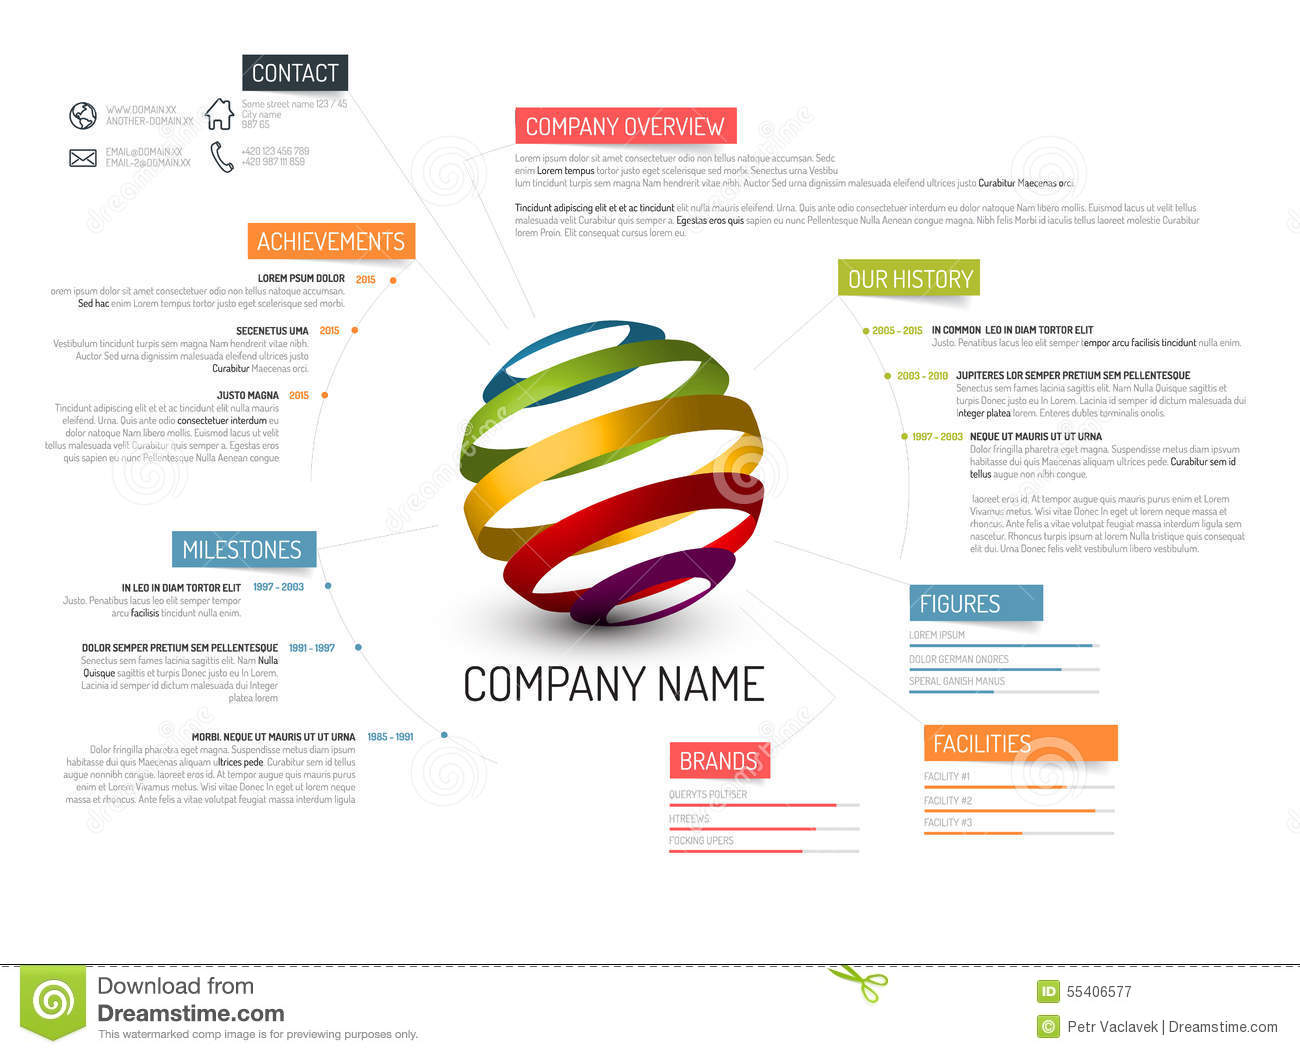 Company Profile Templates Samples In Word Project Company Overview Template Stock Illustration Image 55406577